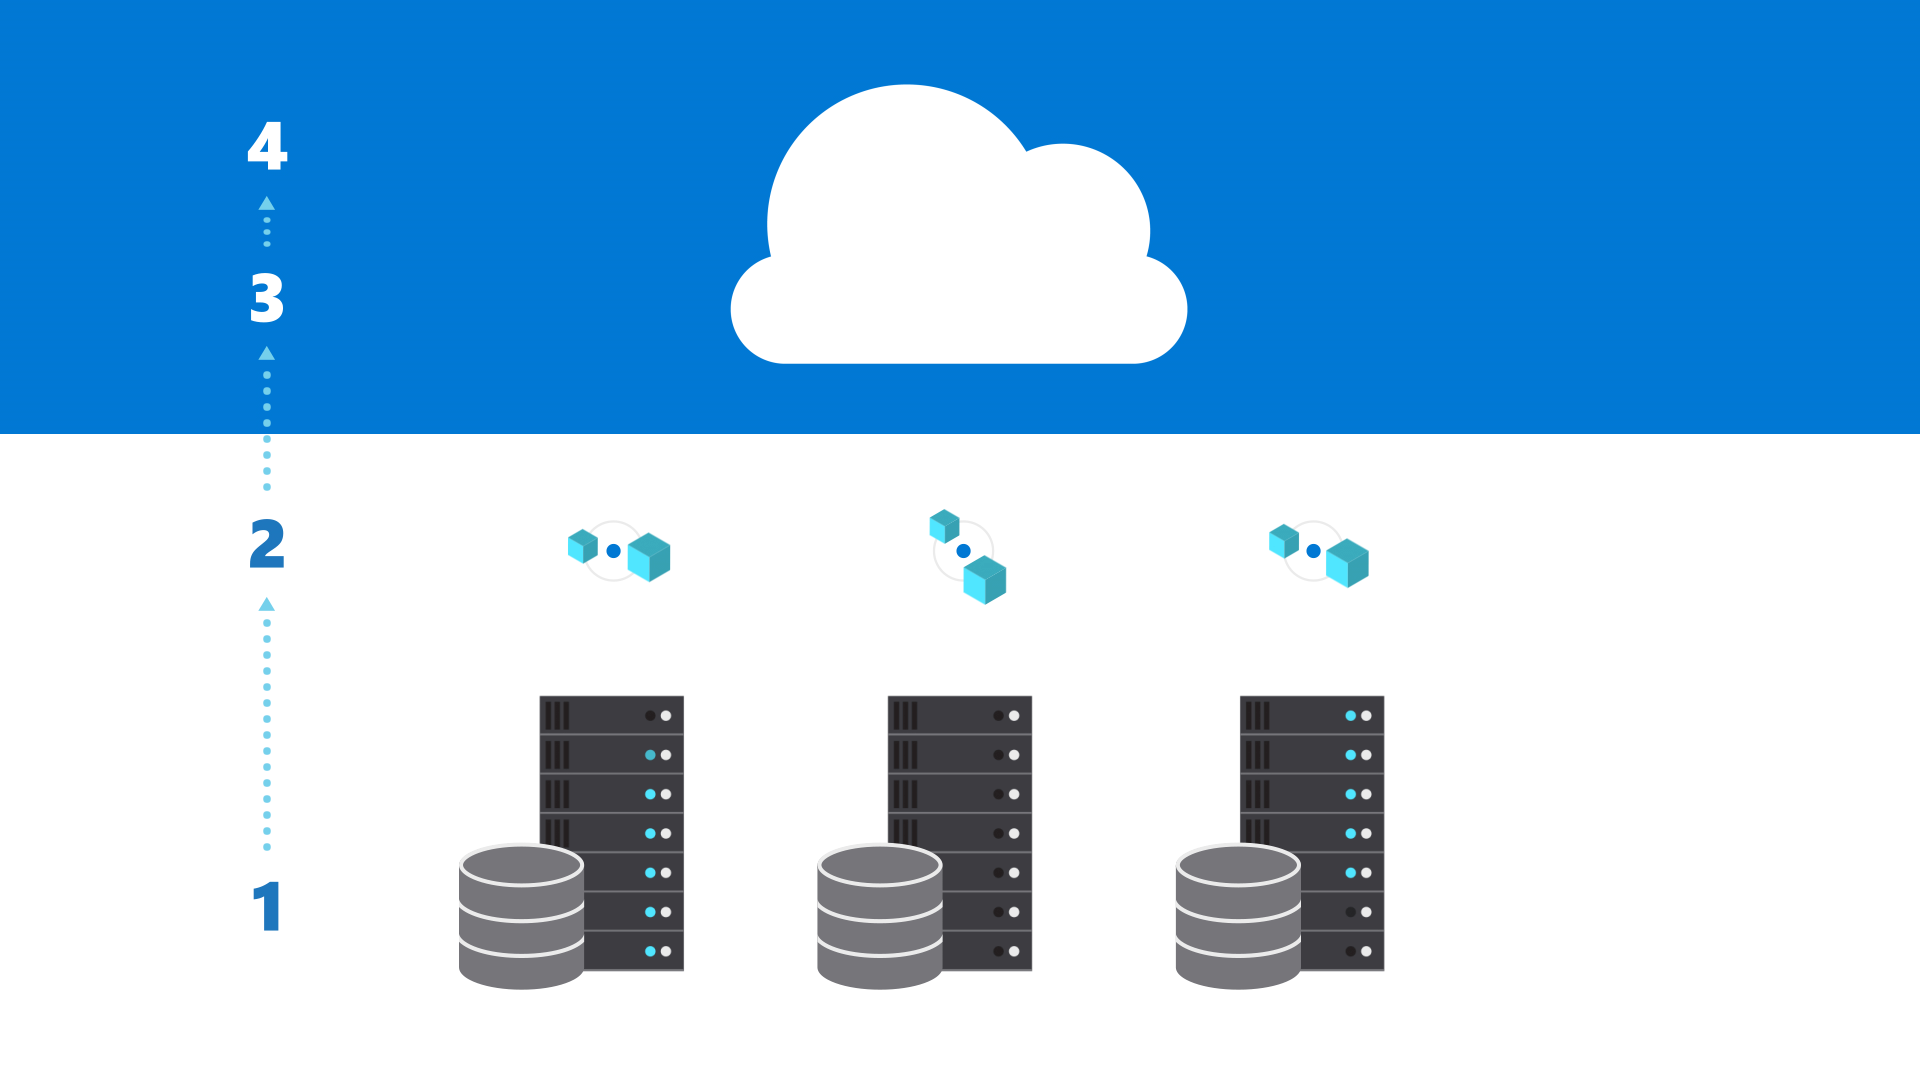 Migrate your applications and data to the cloud